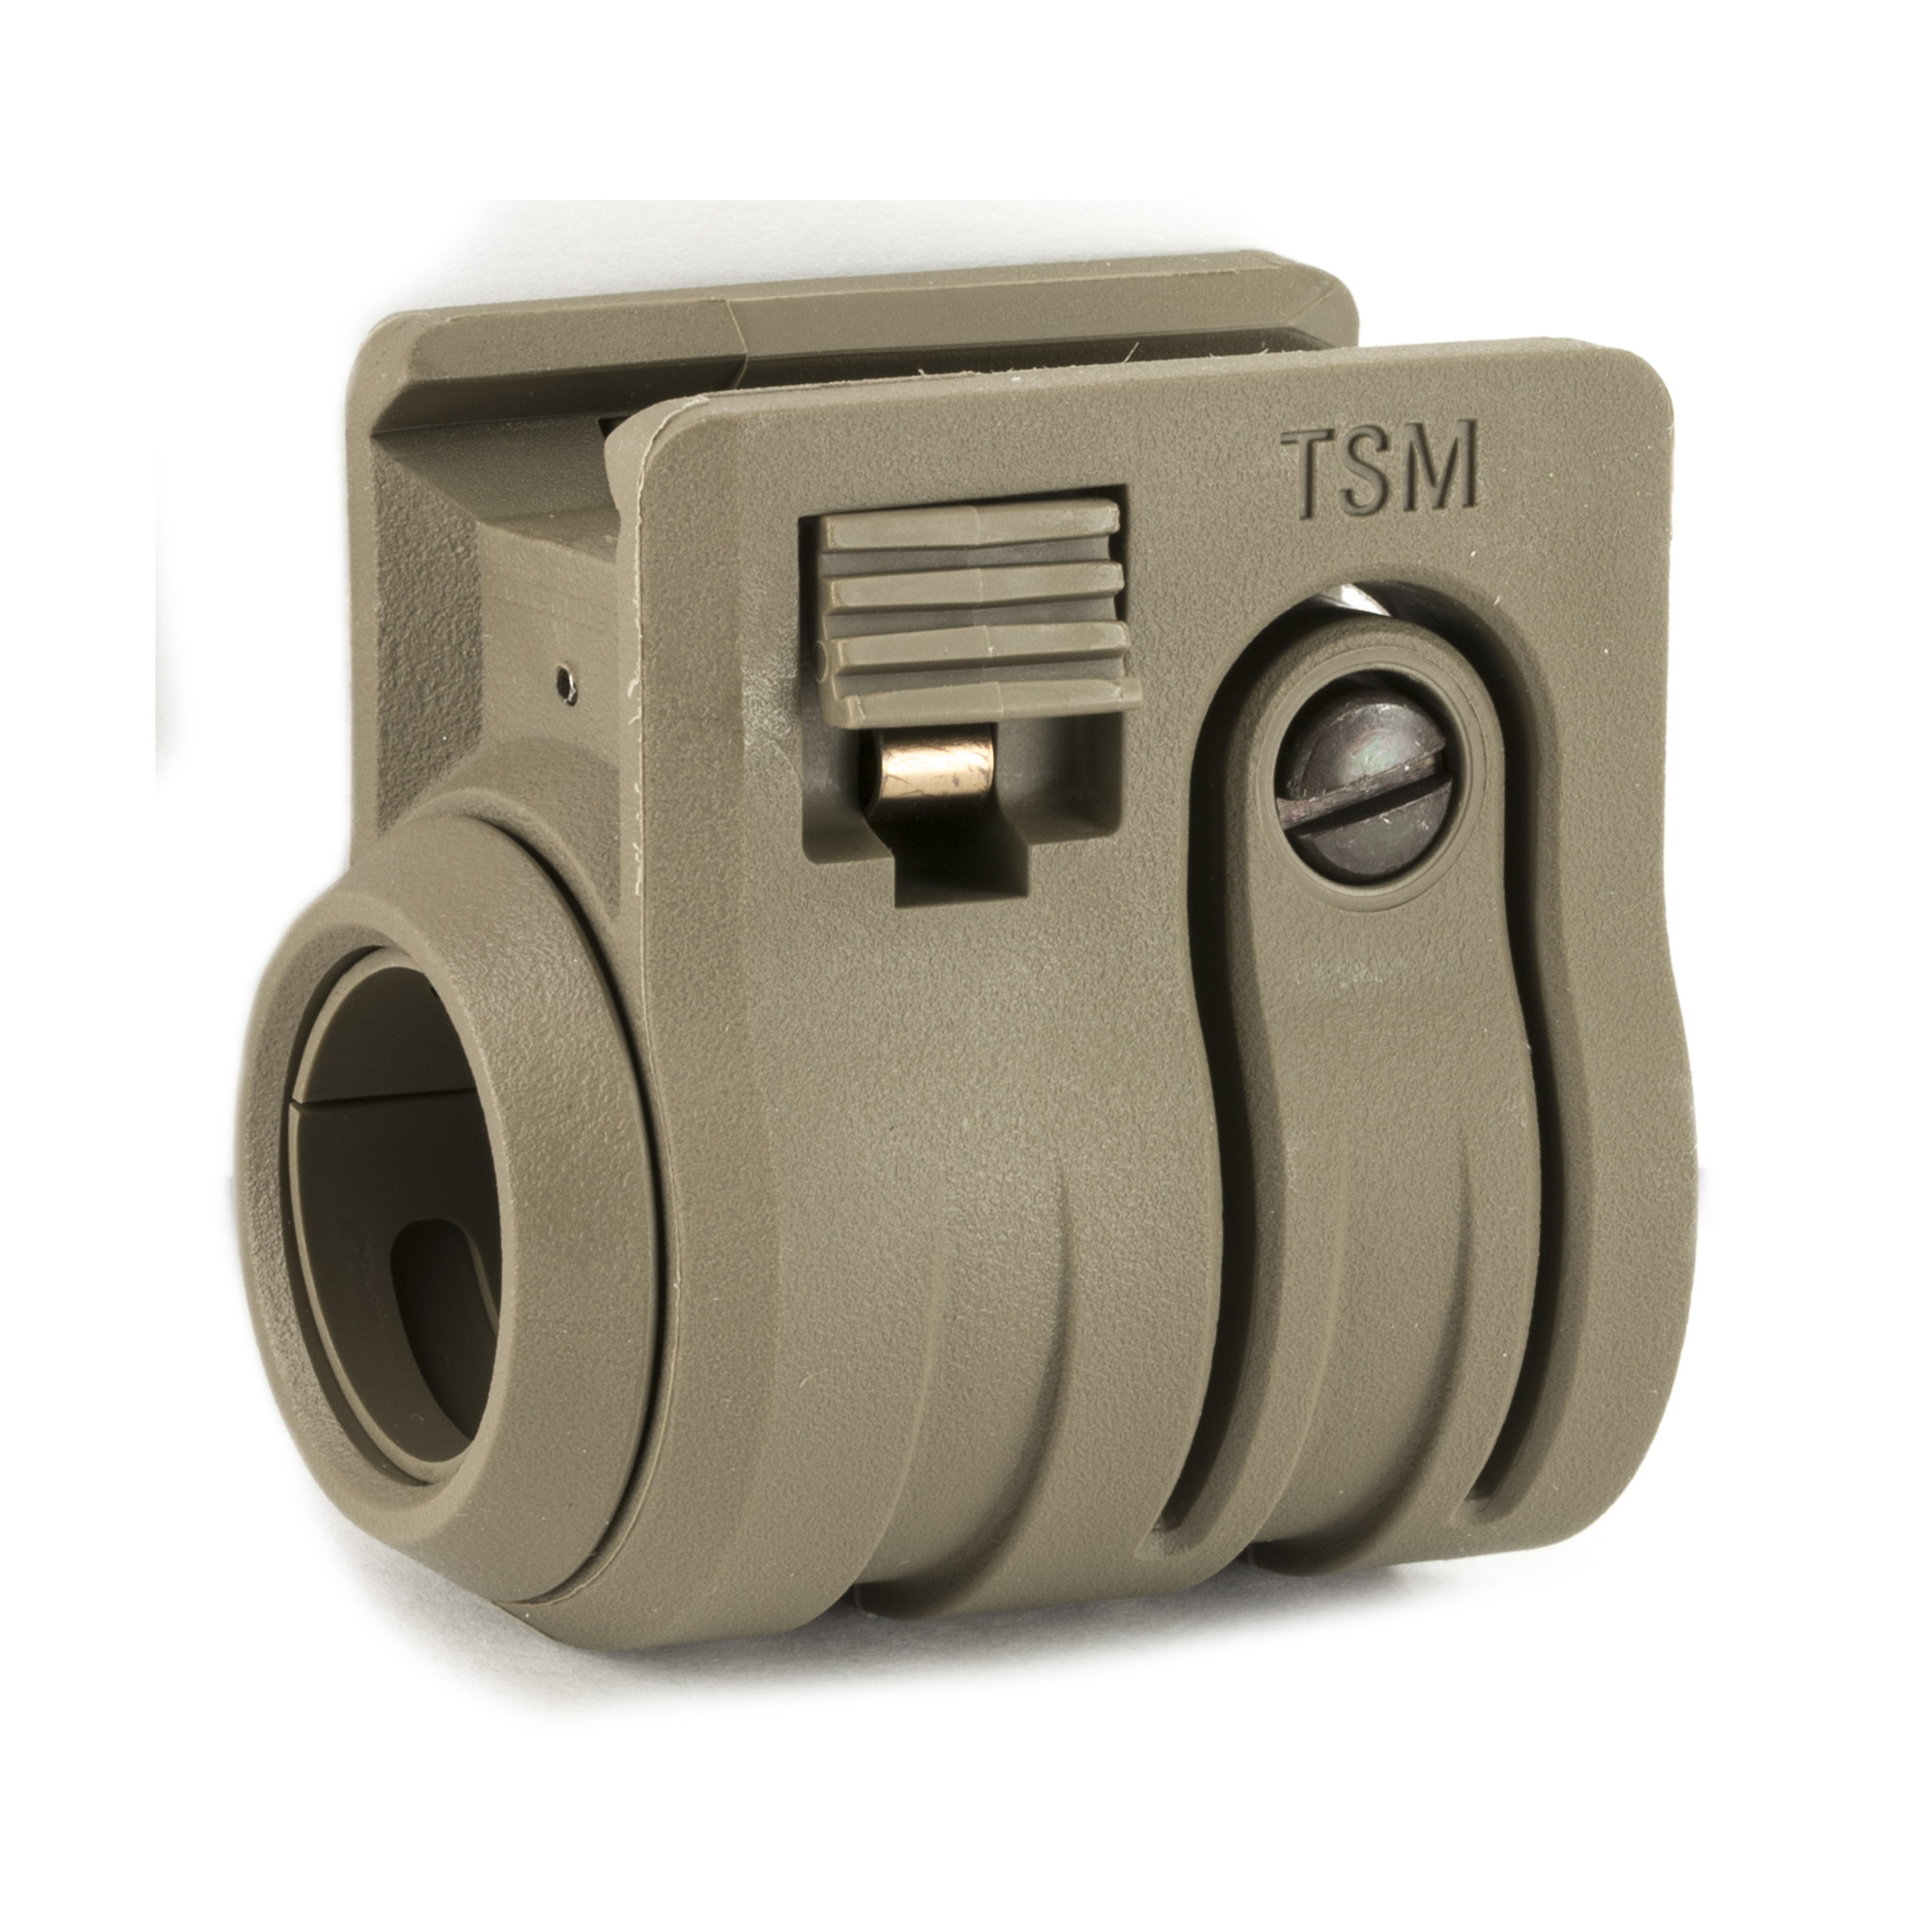 """Flash light/Laser picatinny rail mount accepts a 3/4"""""""" .825"""" or 1"""" illumination device. Two large purchase pads allow for tool free quick mounting or reconfiguration on a Picatinny Rail."""